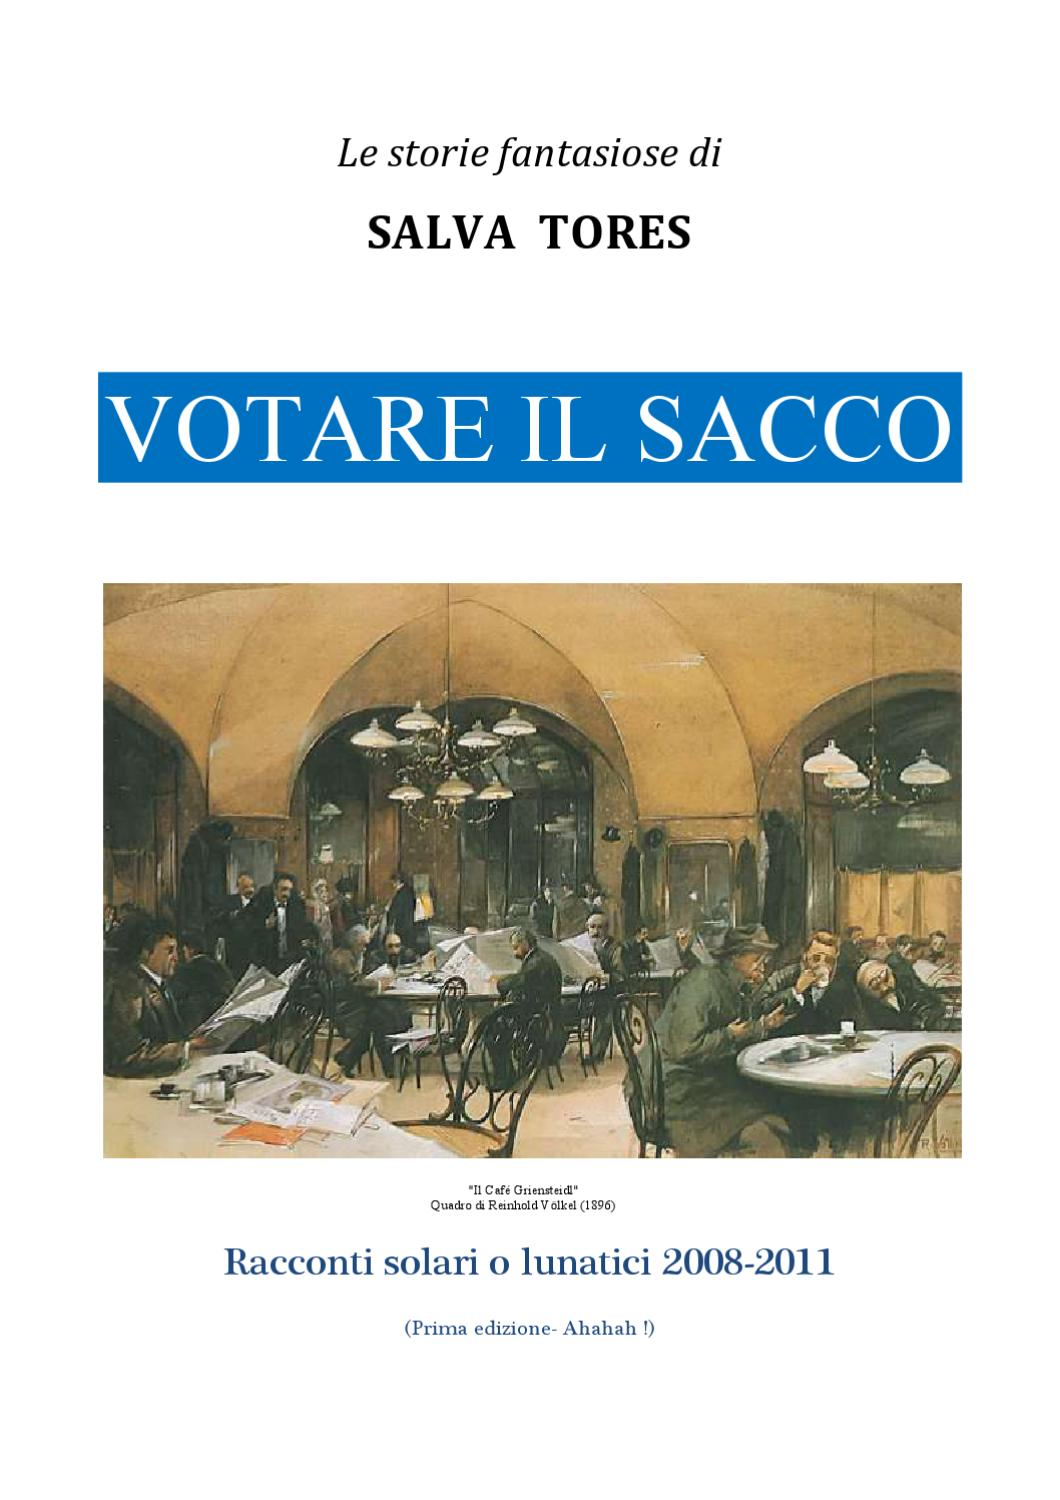 VOTARE IL SACCO by Salva Tores - issuu 9374aaf8a0d